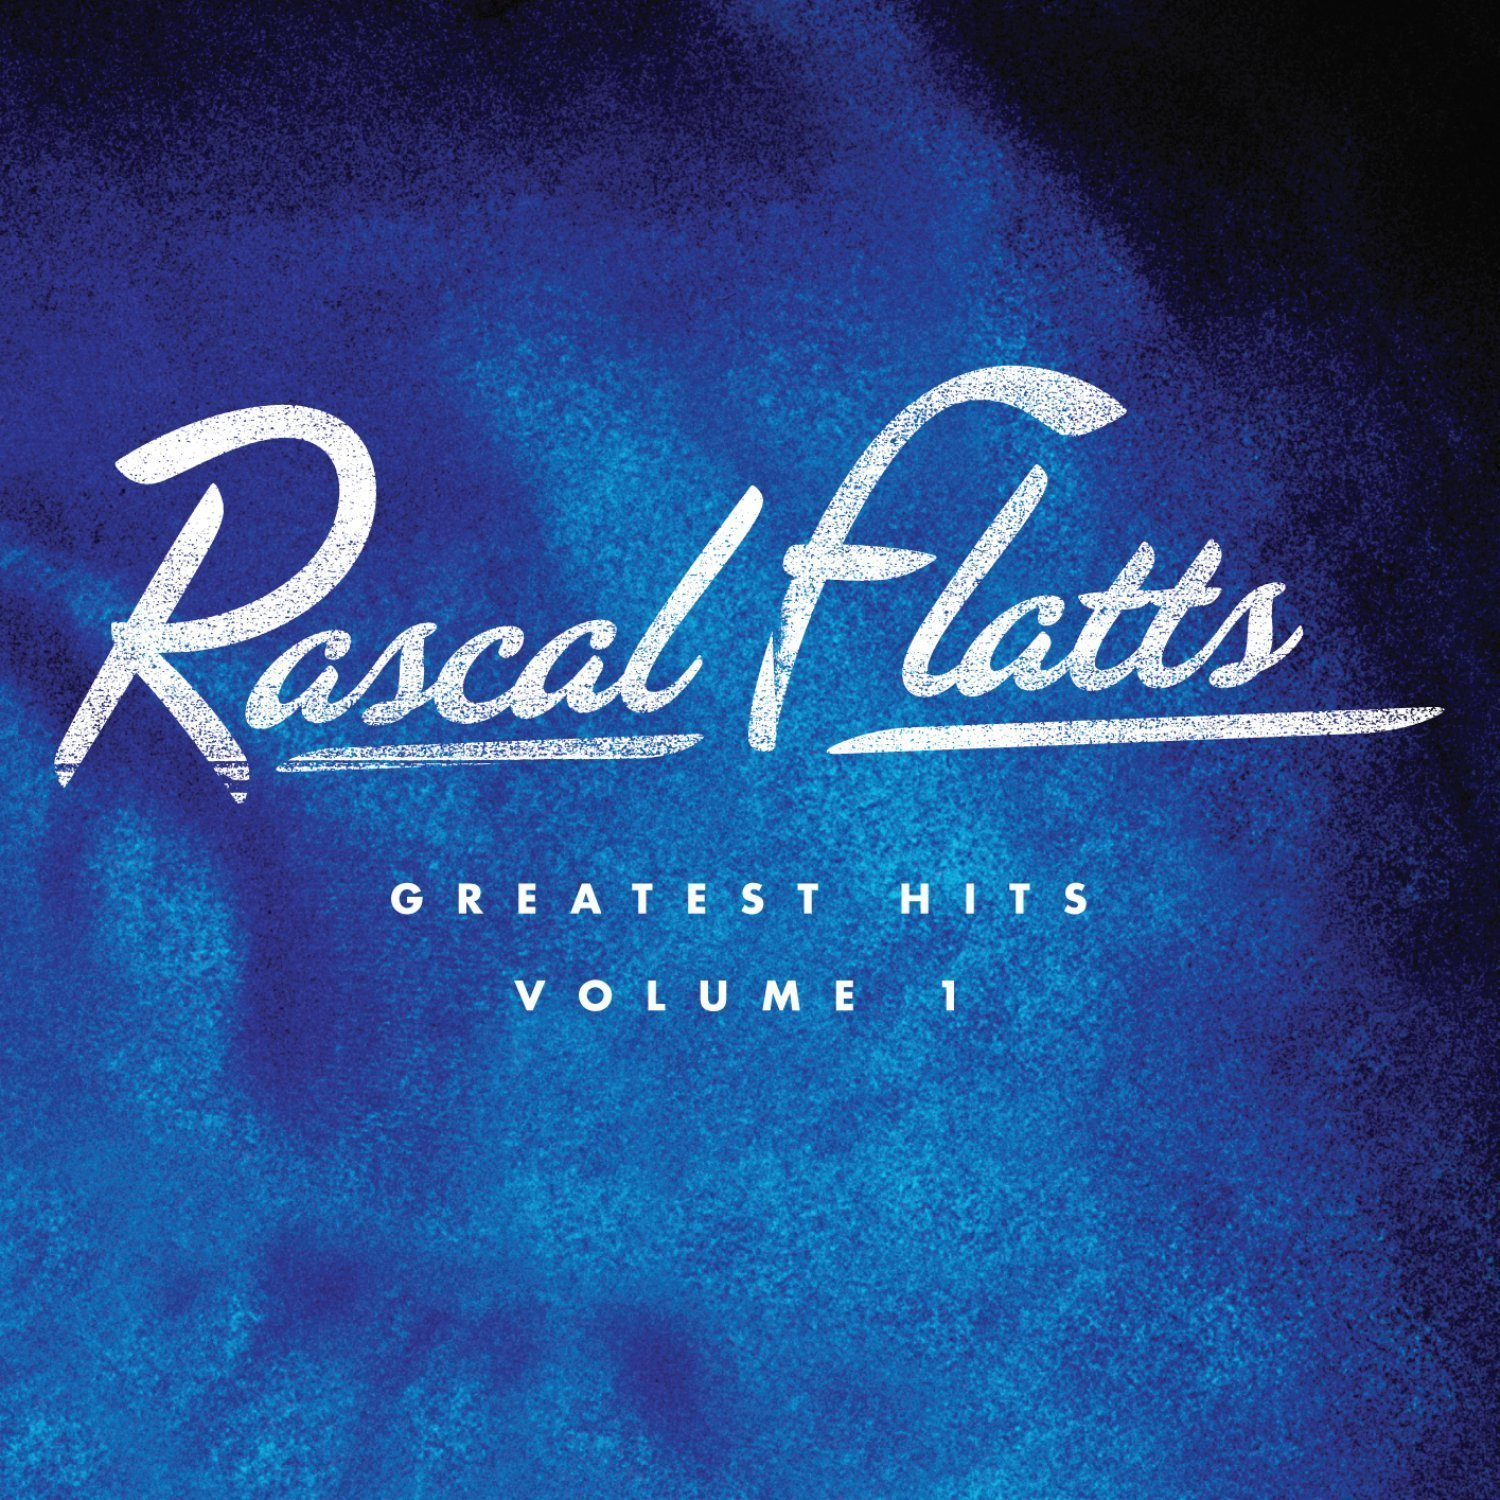 Rascal Flatts album Greatest Hits Volume 1